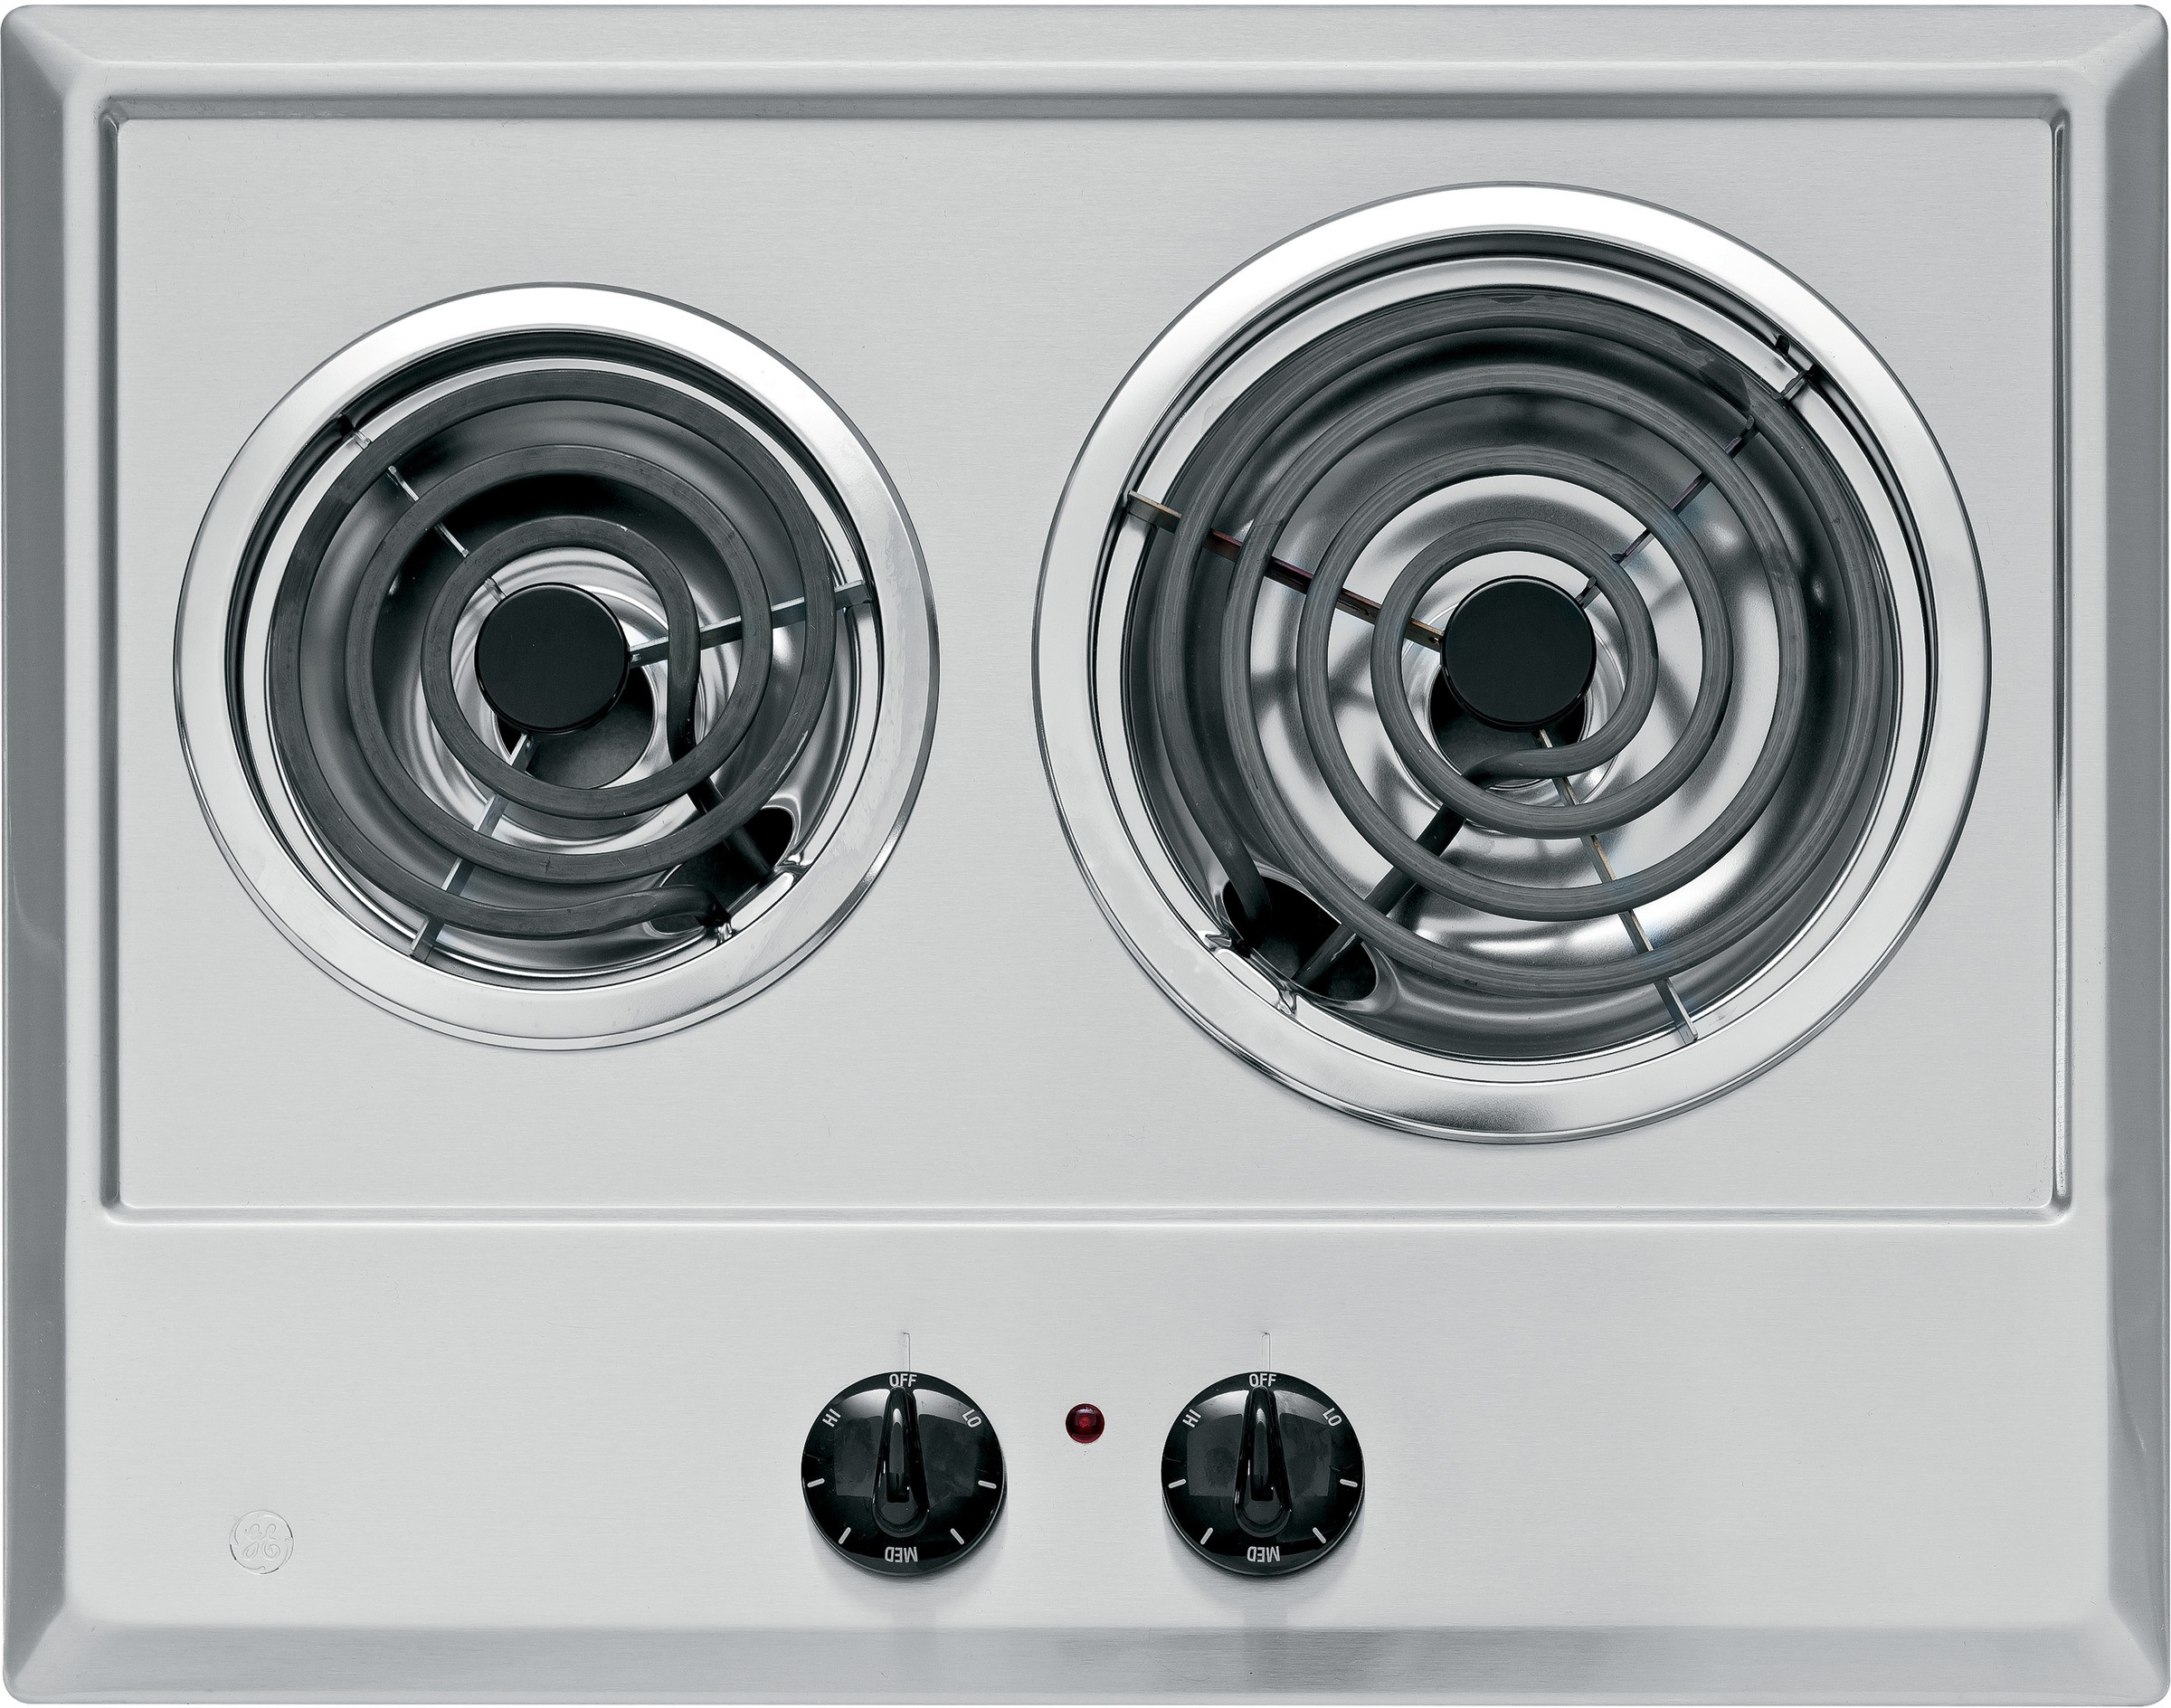 miele induction cooktop instructions